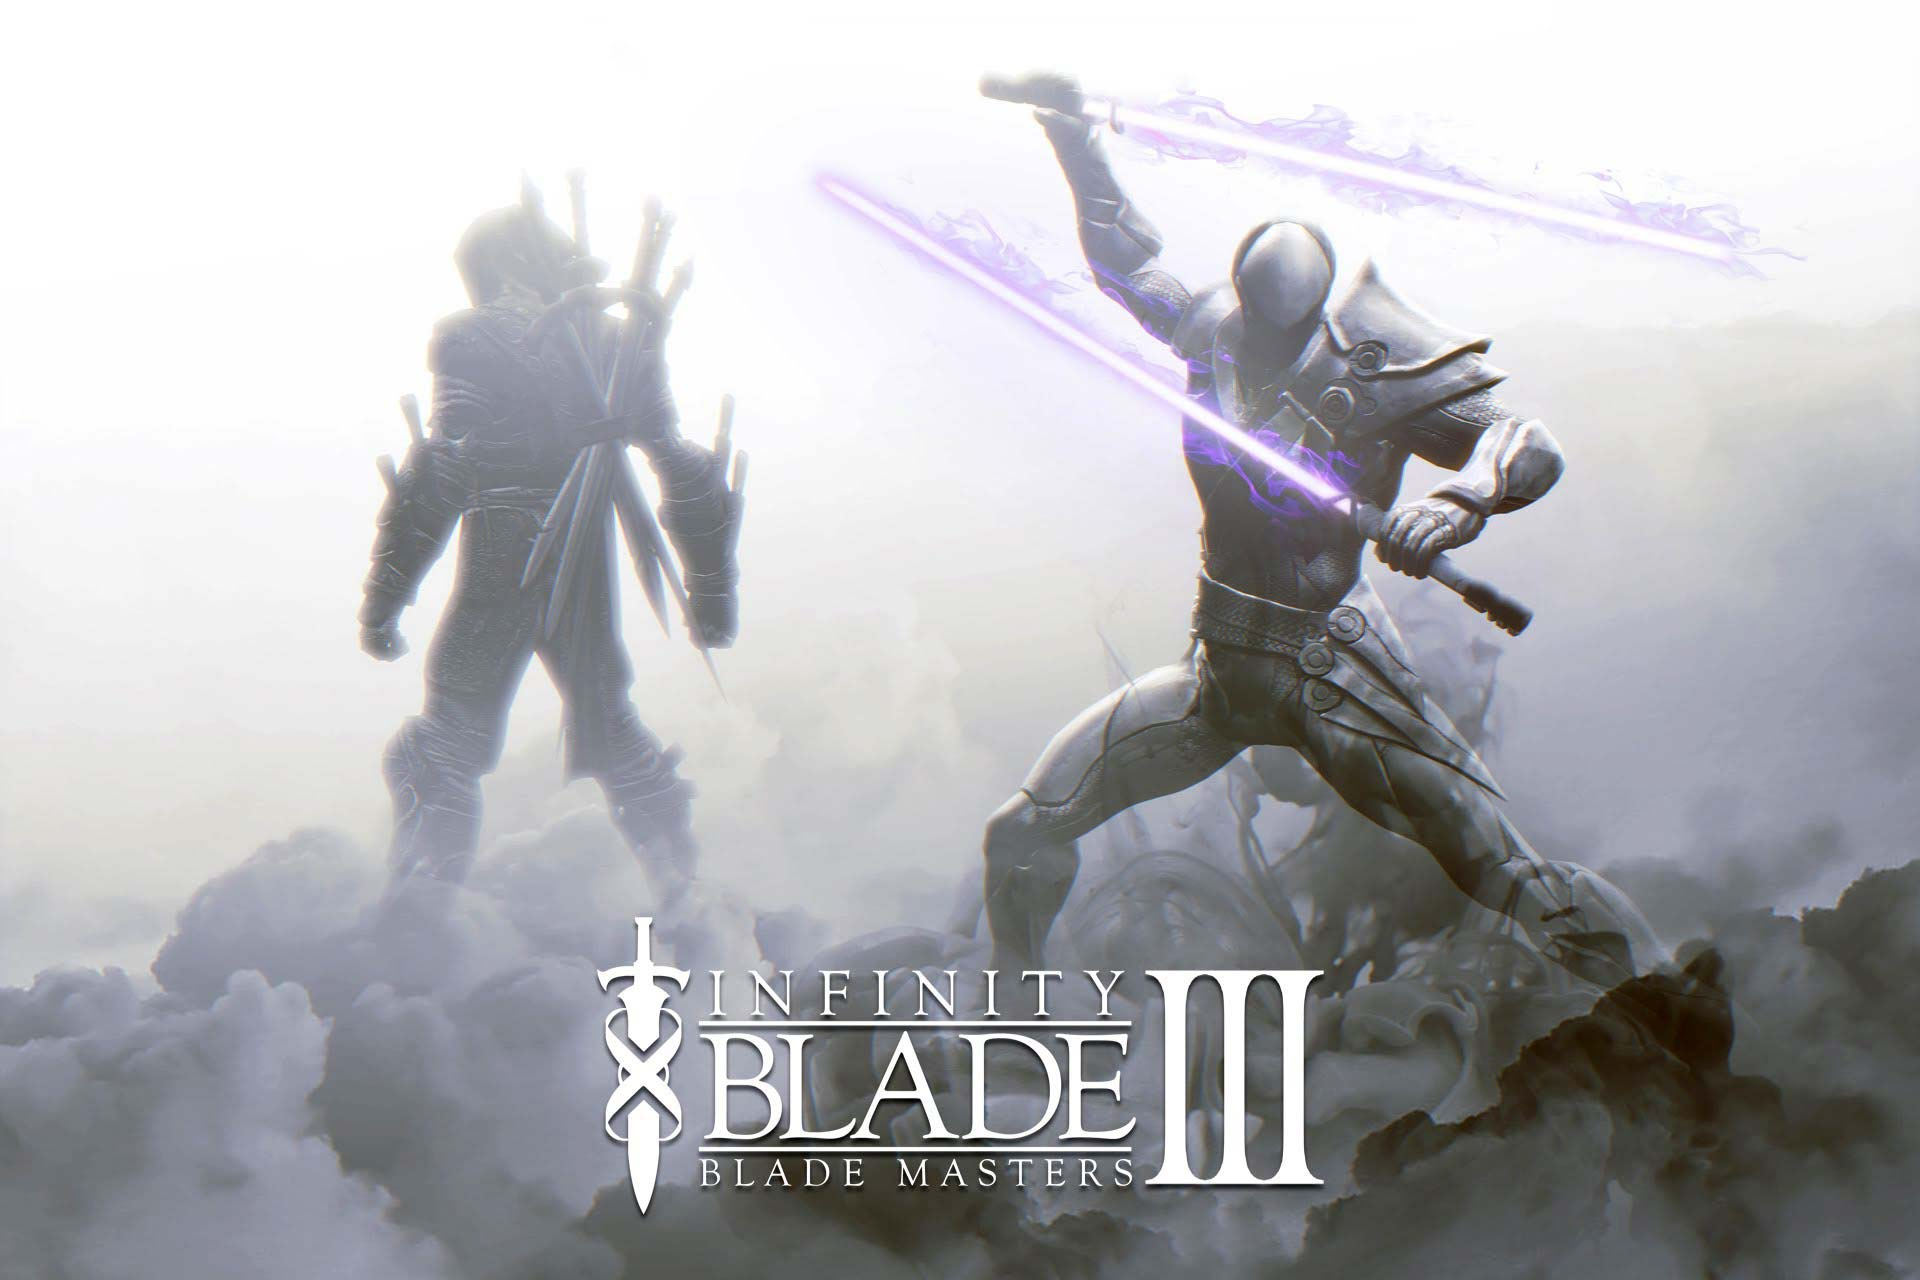 Blade Masters Infinity Blade Iii Receives A Major Update